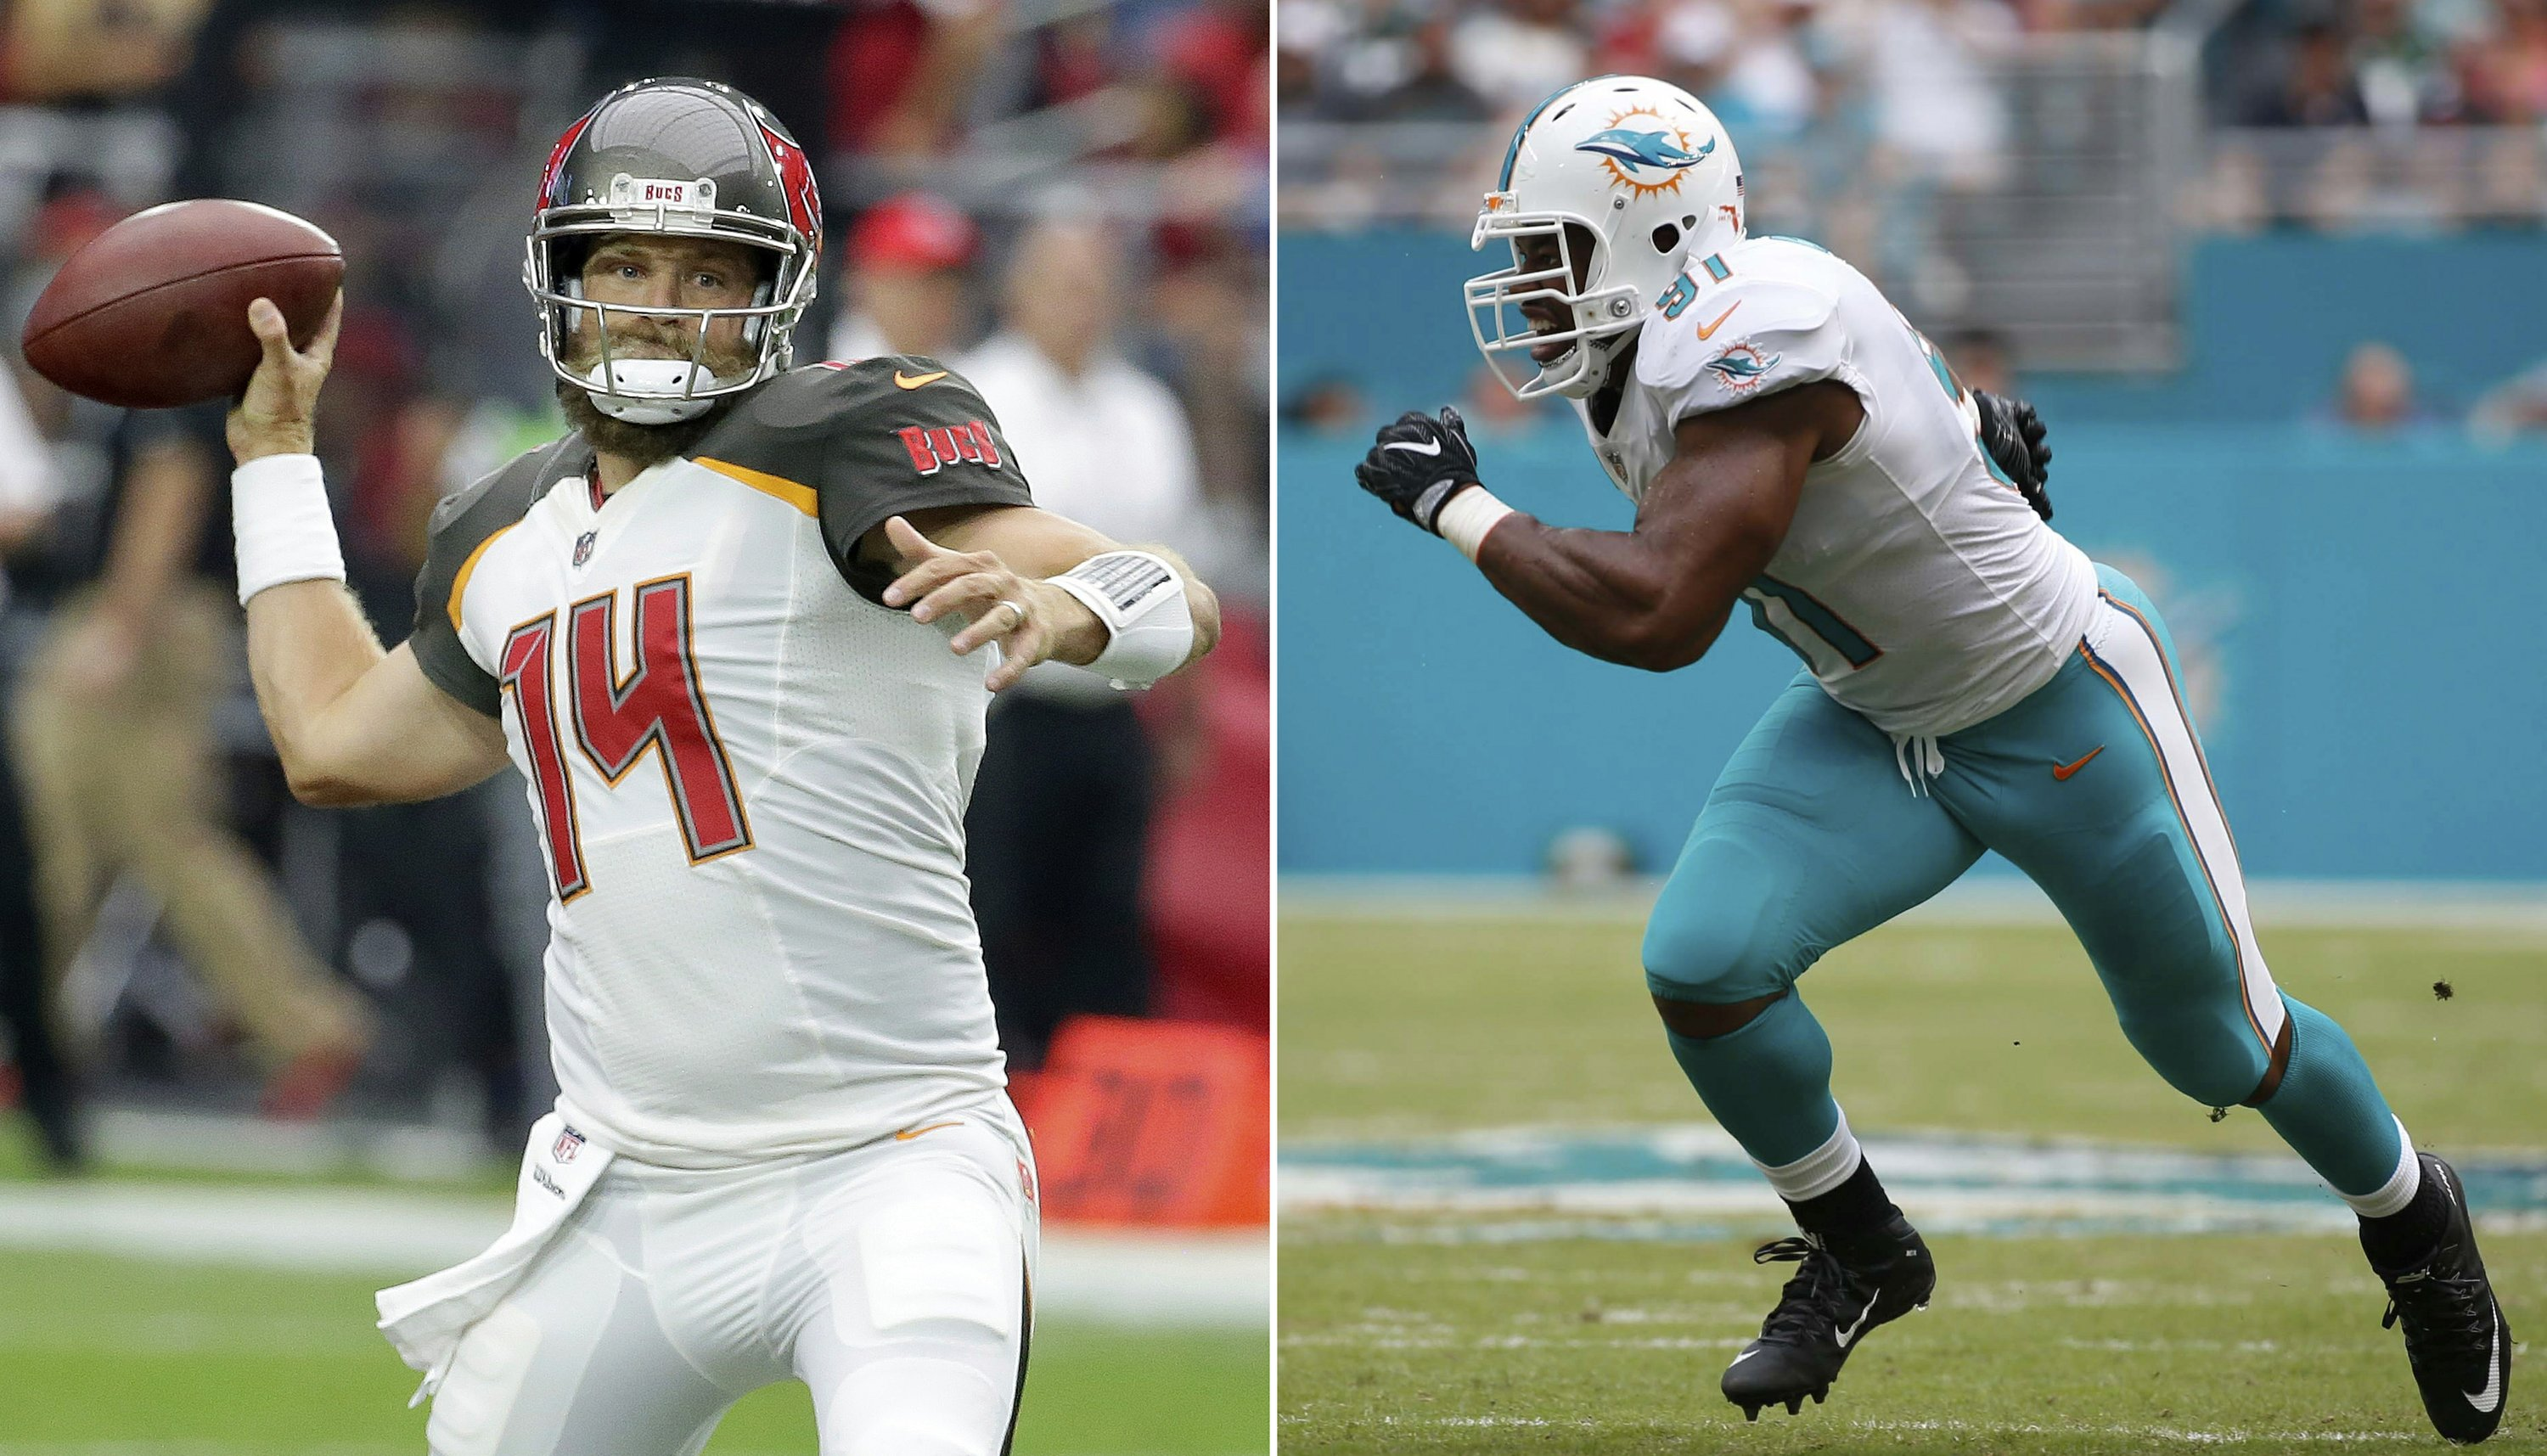 Fantasy Plays Players To Start And Bench For Week 11